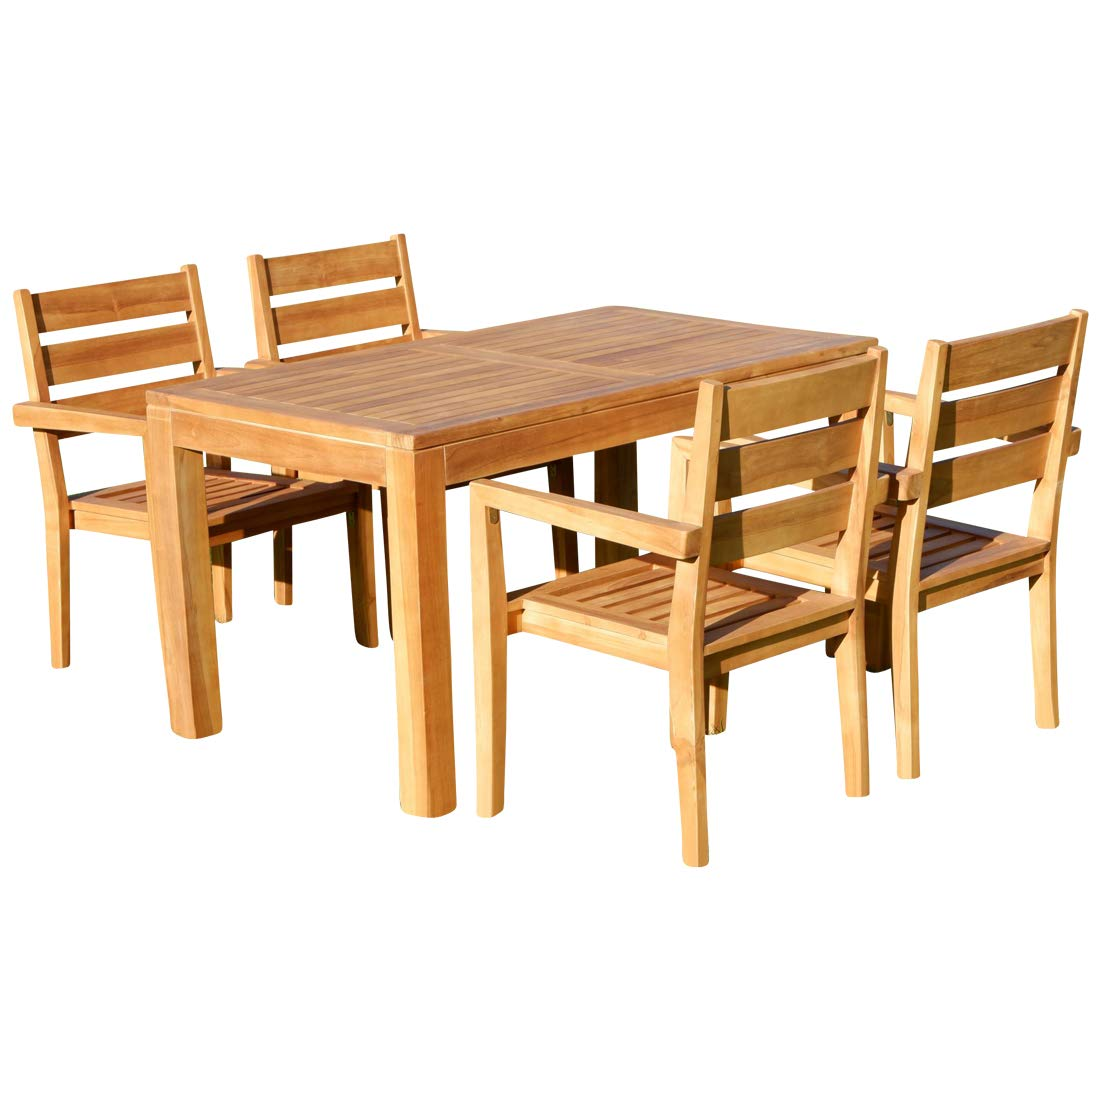 Teak Set Gartengarnitur Bigfuss Tisch 140x80 mit 4 Kingston Sessel Serie Jav von AS-S